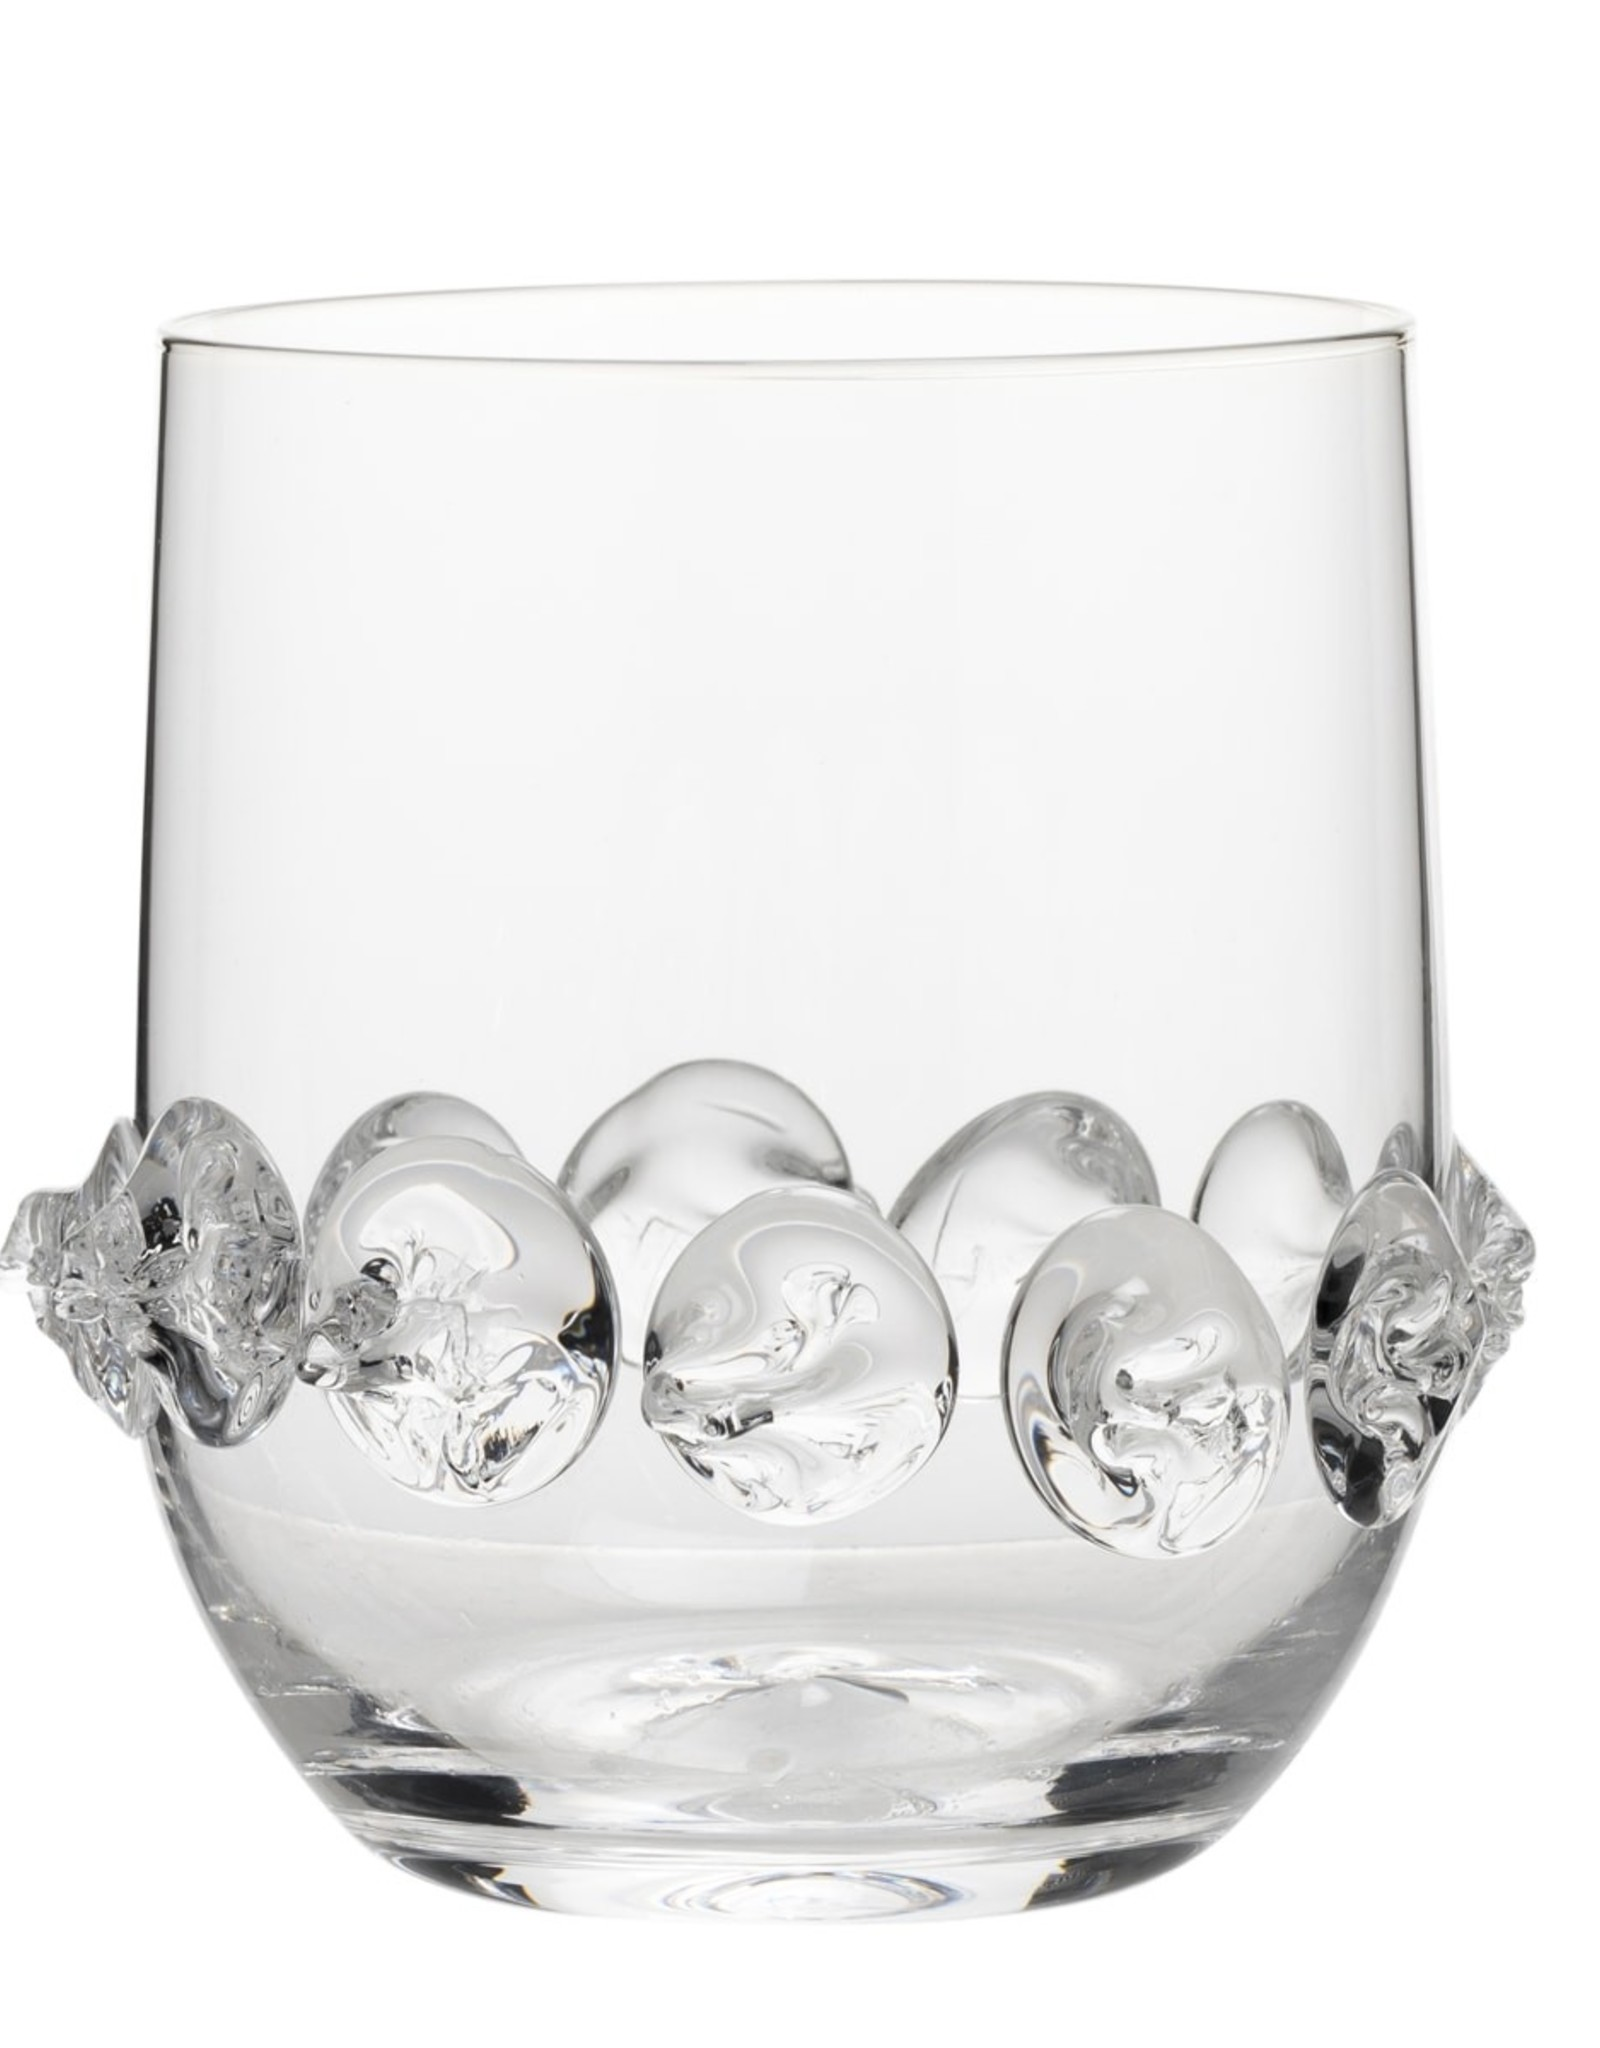 Juliska Heritage Collection Boxed Set of 4 Tumblers